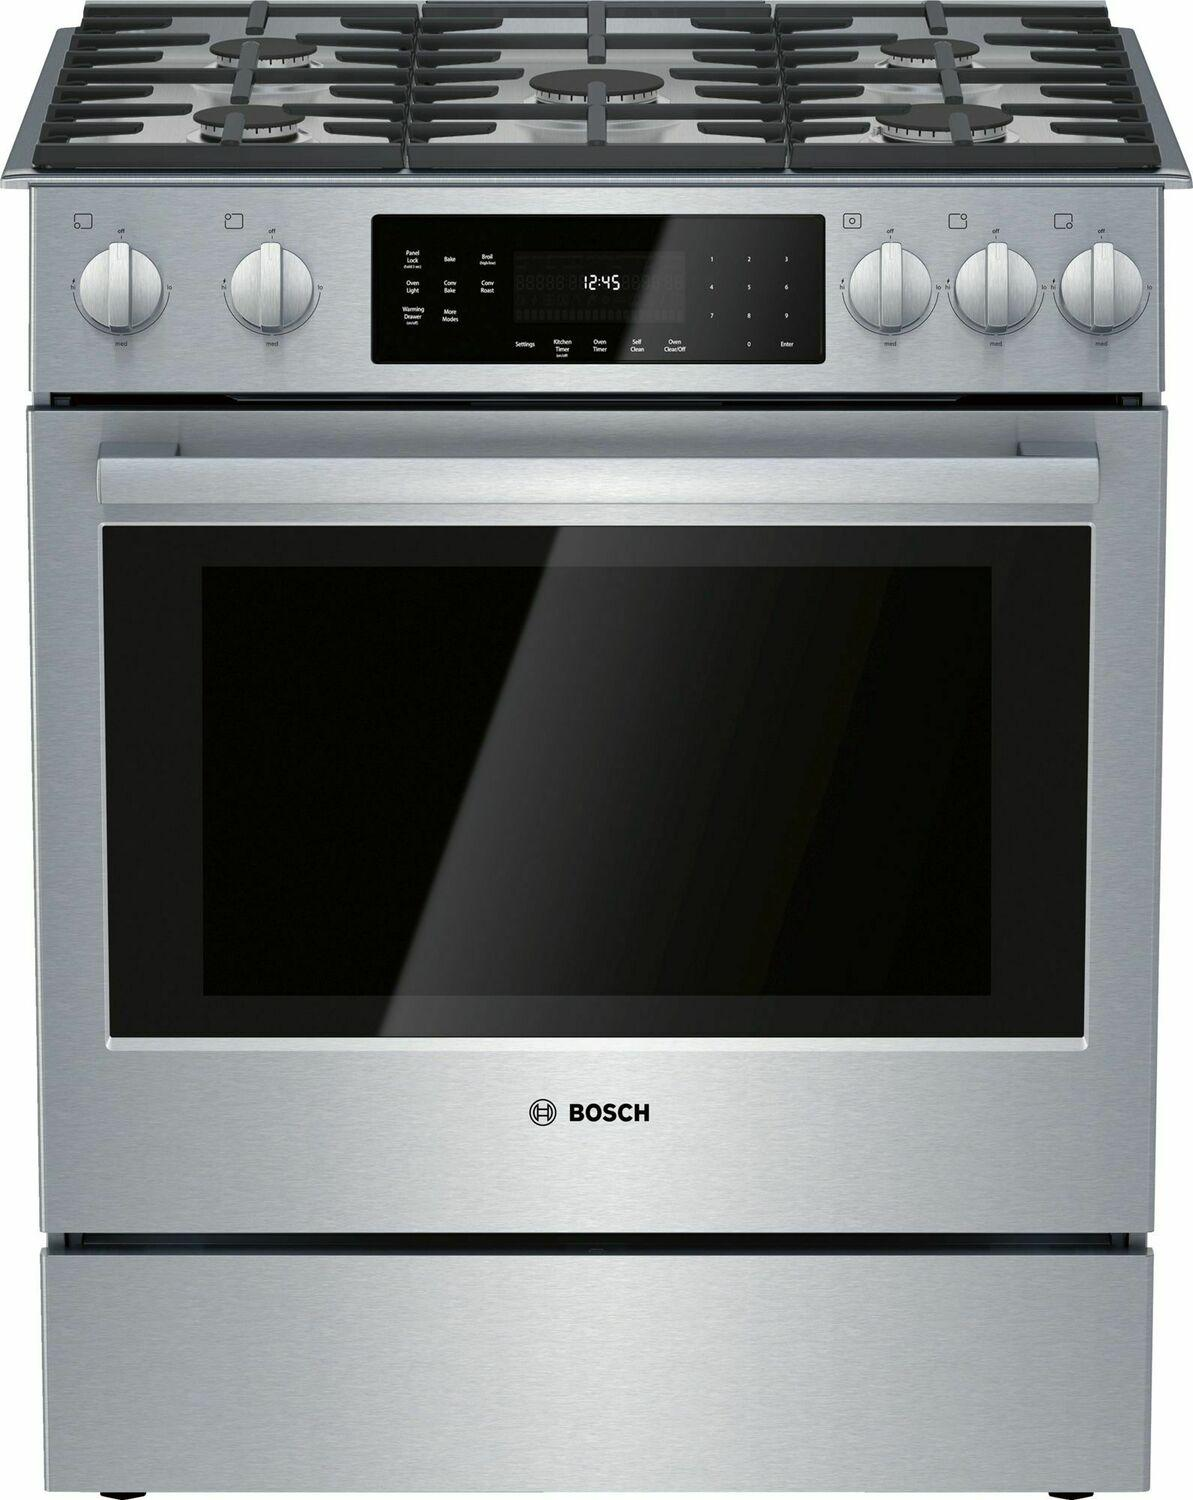 Bosch800 Series Gas Slide-In Range 30'' Stainless Steel Hgi8056uc